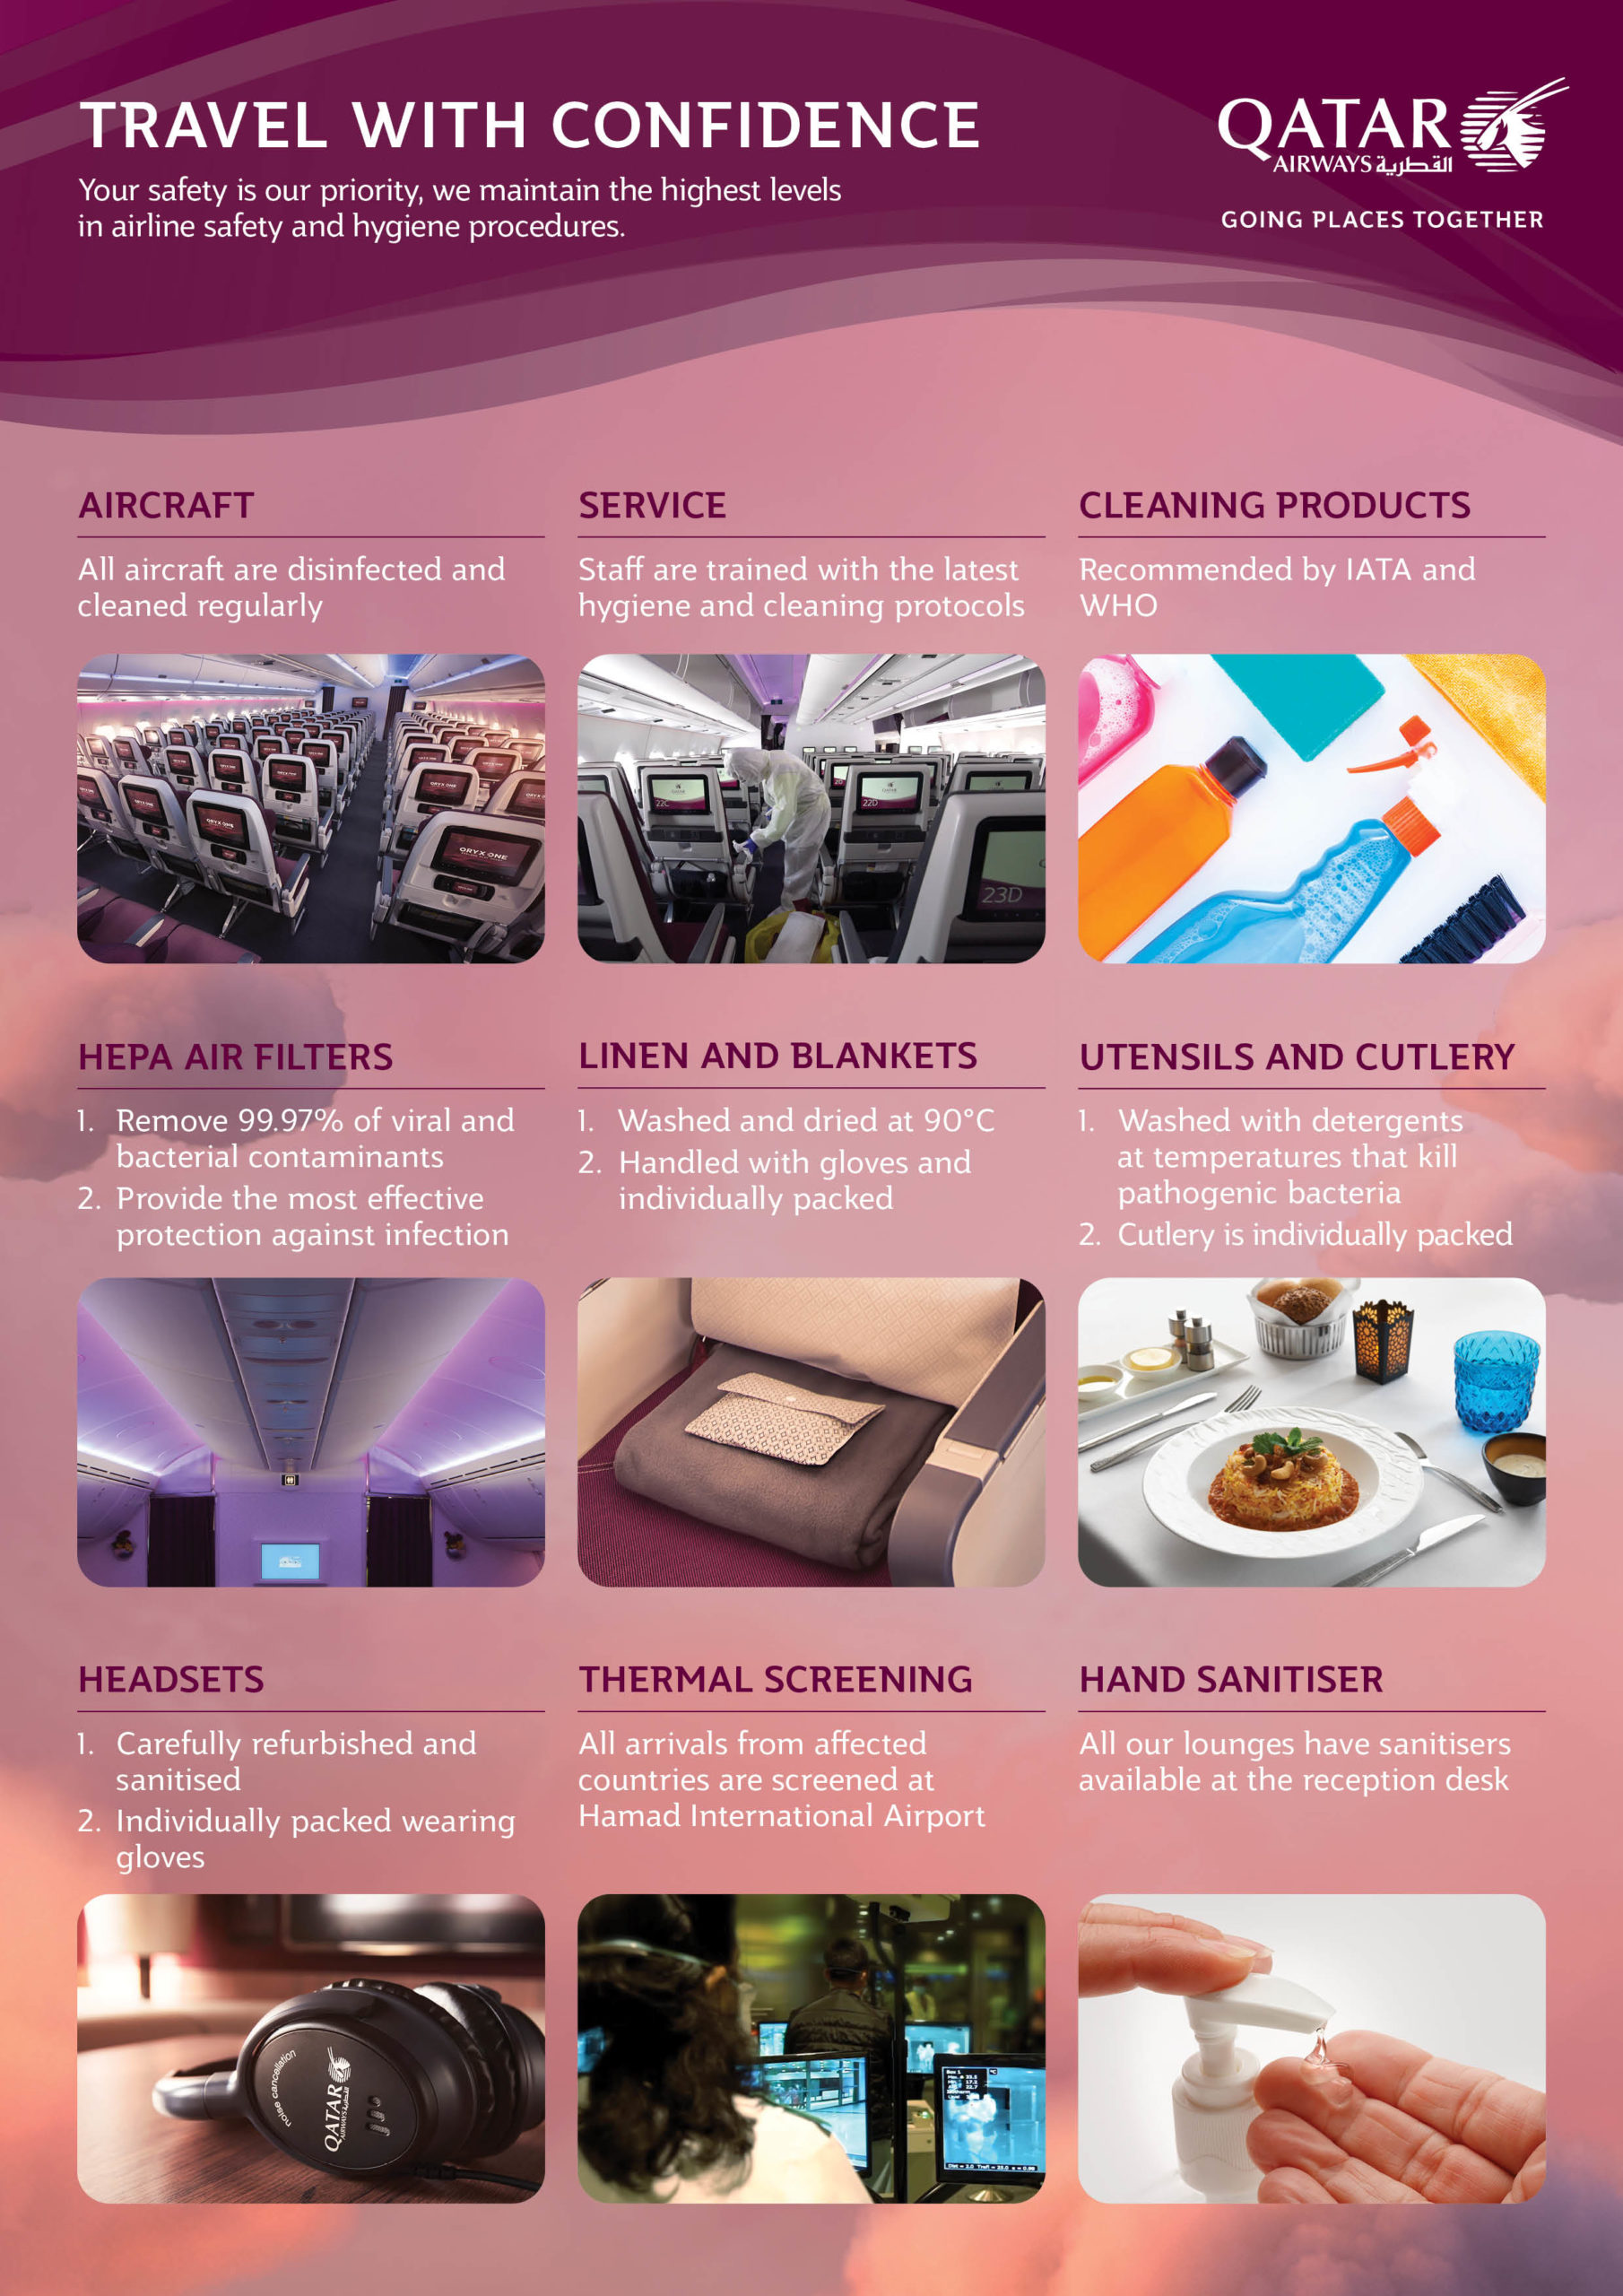 Flying to 70 international cities during COVID-19 with confidence: Qatar Airways CEO explains how